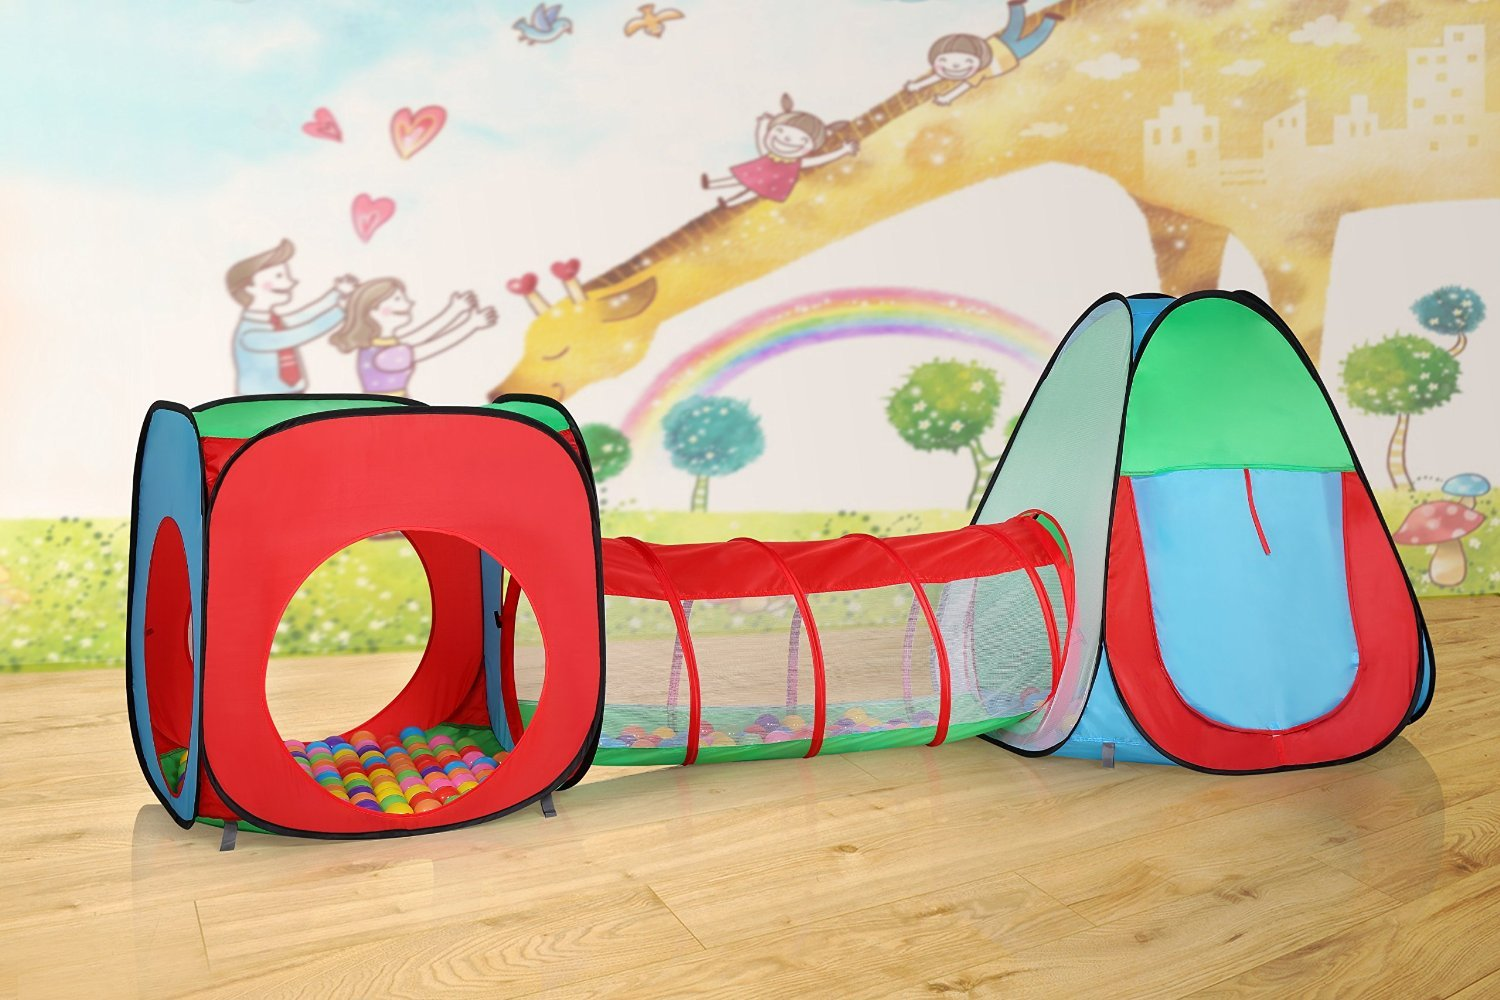 Amazon.com LifeVC Playhouse Tent with Tunnel for Toddlers Toys u0026 Games & Amazon.com: LifeVC Playhouse Tent with Tunnel for Toddlers: Toys ...